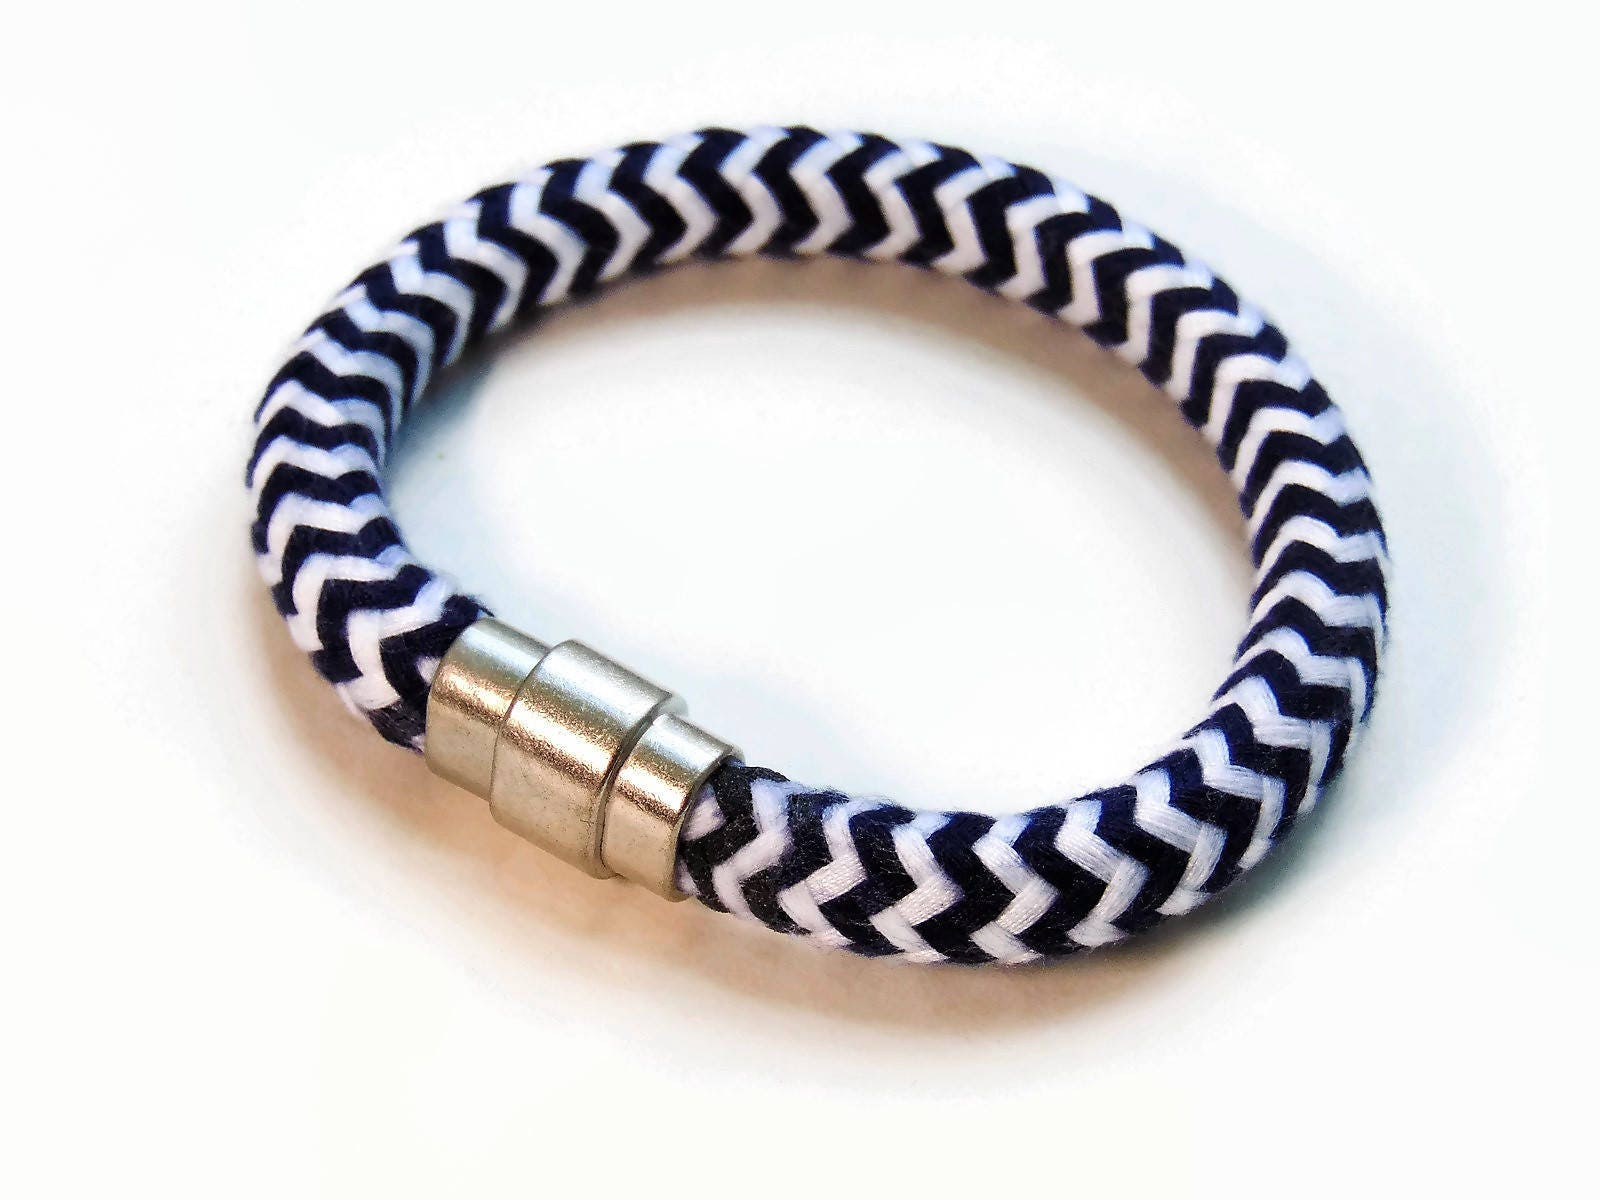 paracord rope ori now com details braceelet bracelet buy with from charm black etsy handmade nautical anchor